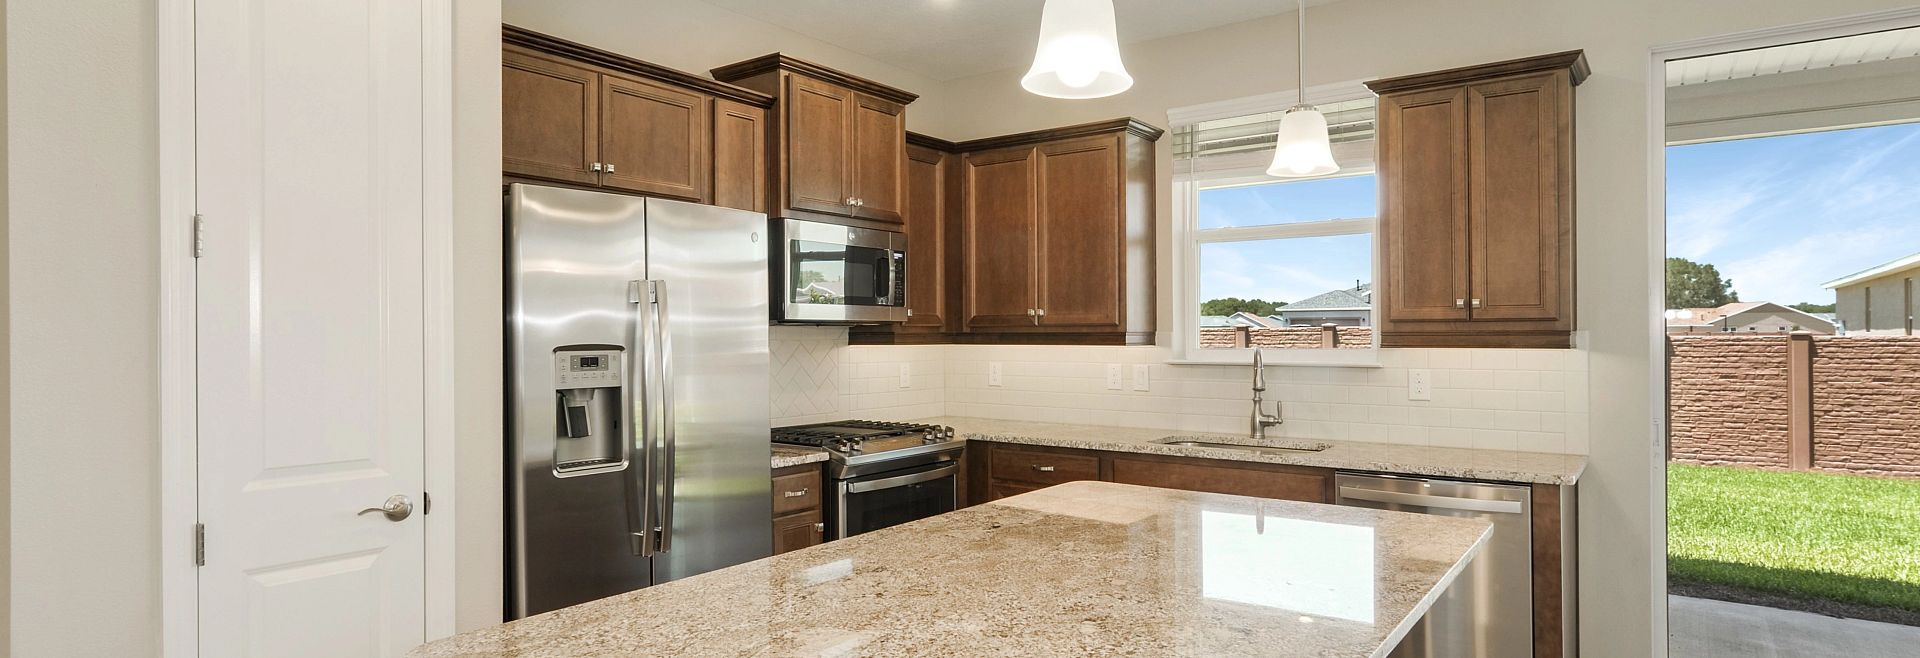 Trilogy at Ocala Preserve Rome Quick Move In Kitchen